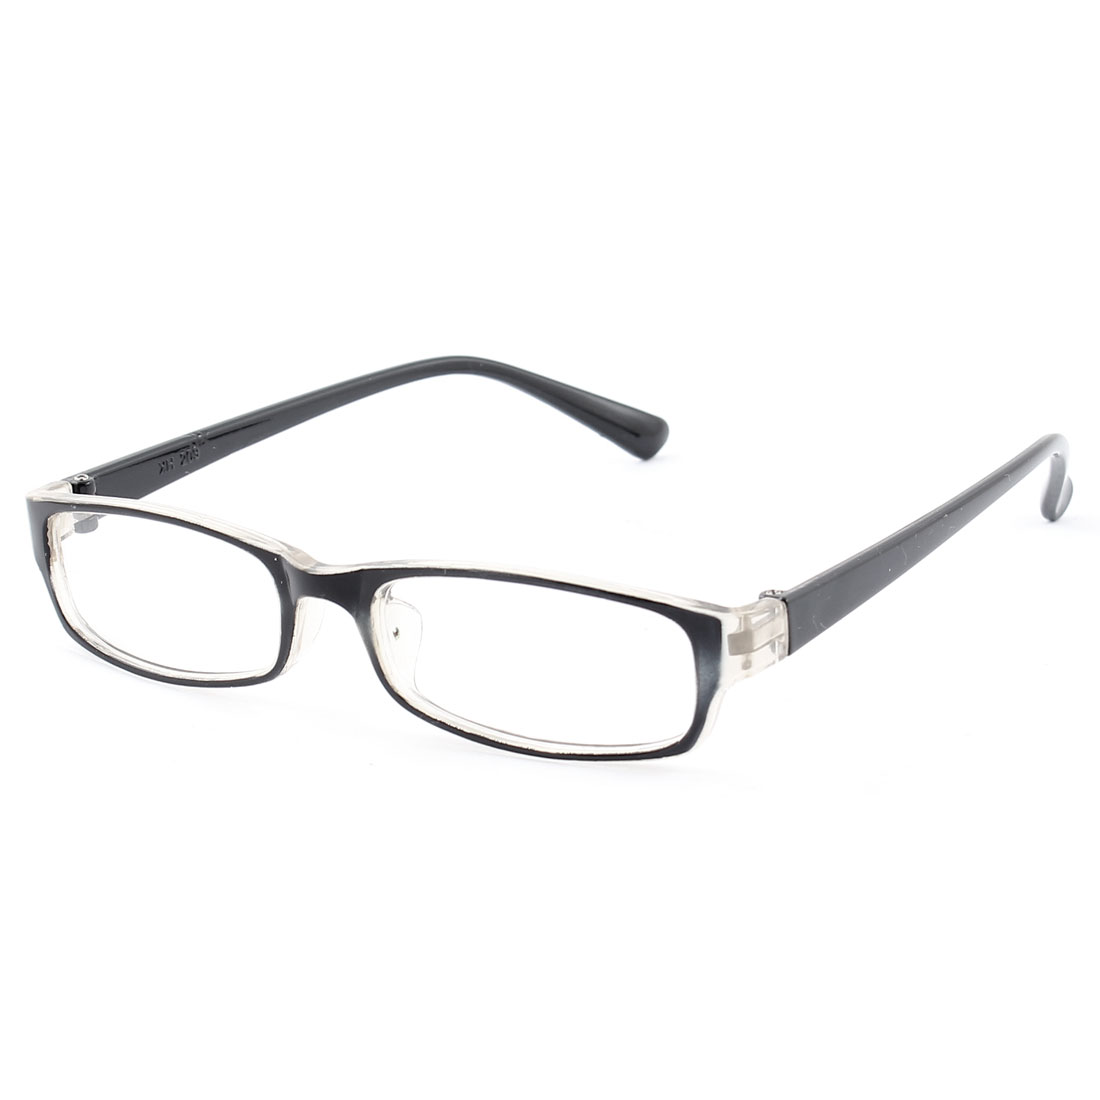 Kids Plastic Full Rim Rectangle Lens Plain Eyeglasses Plano Glasses Black Clear